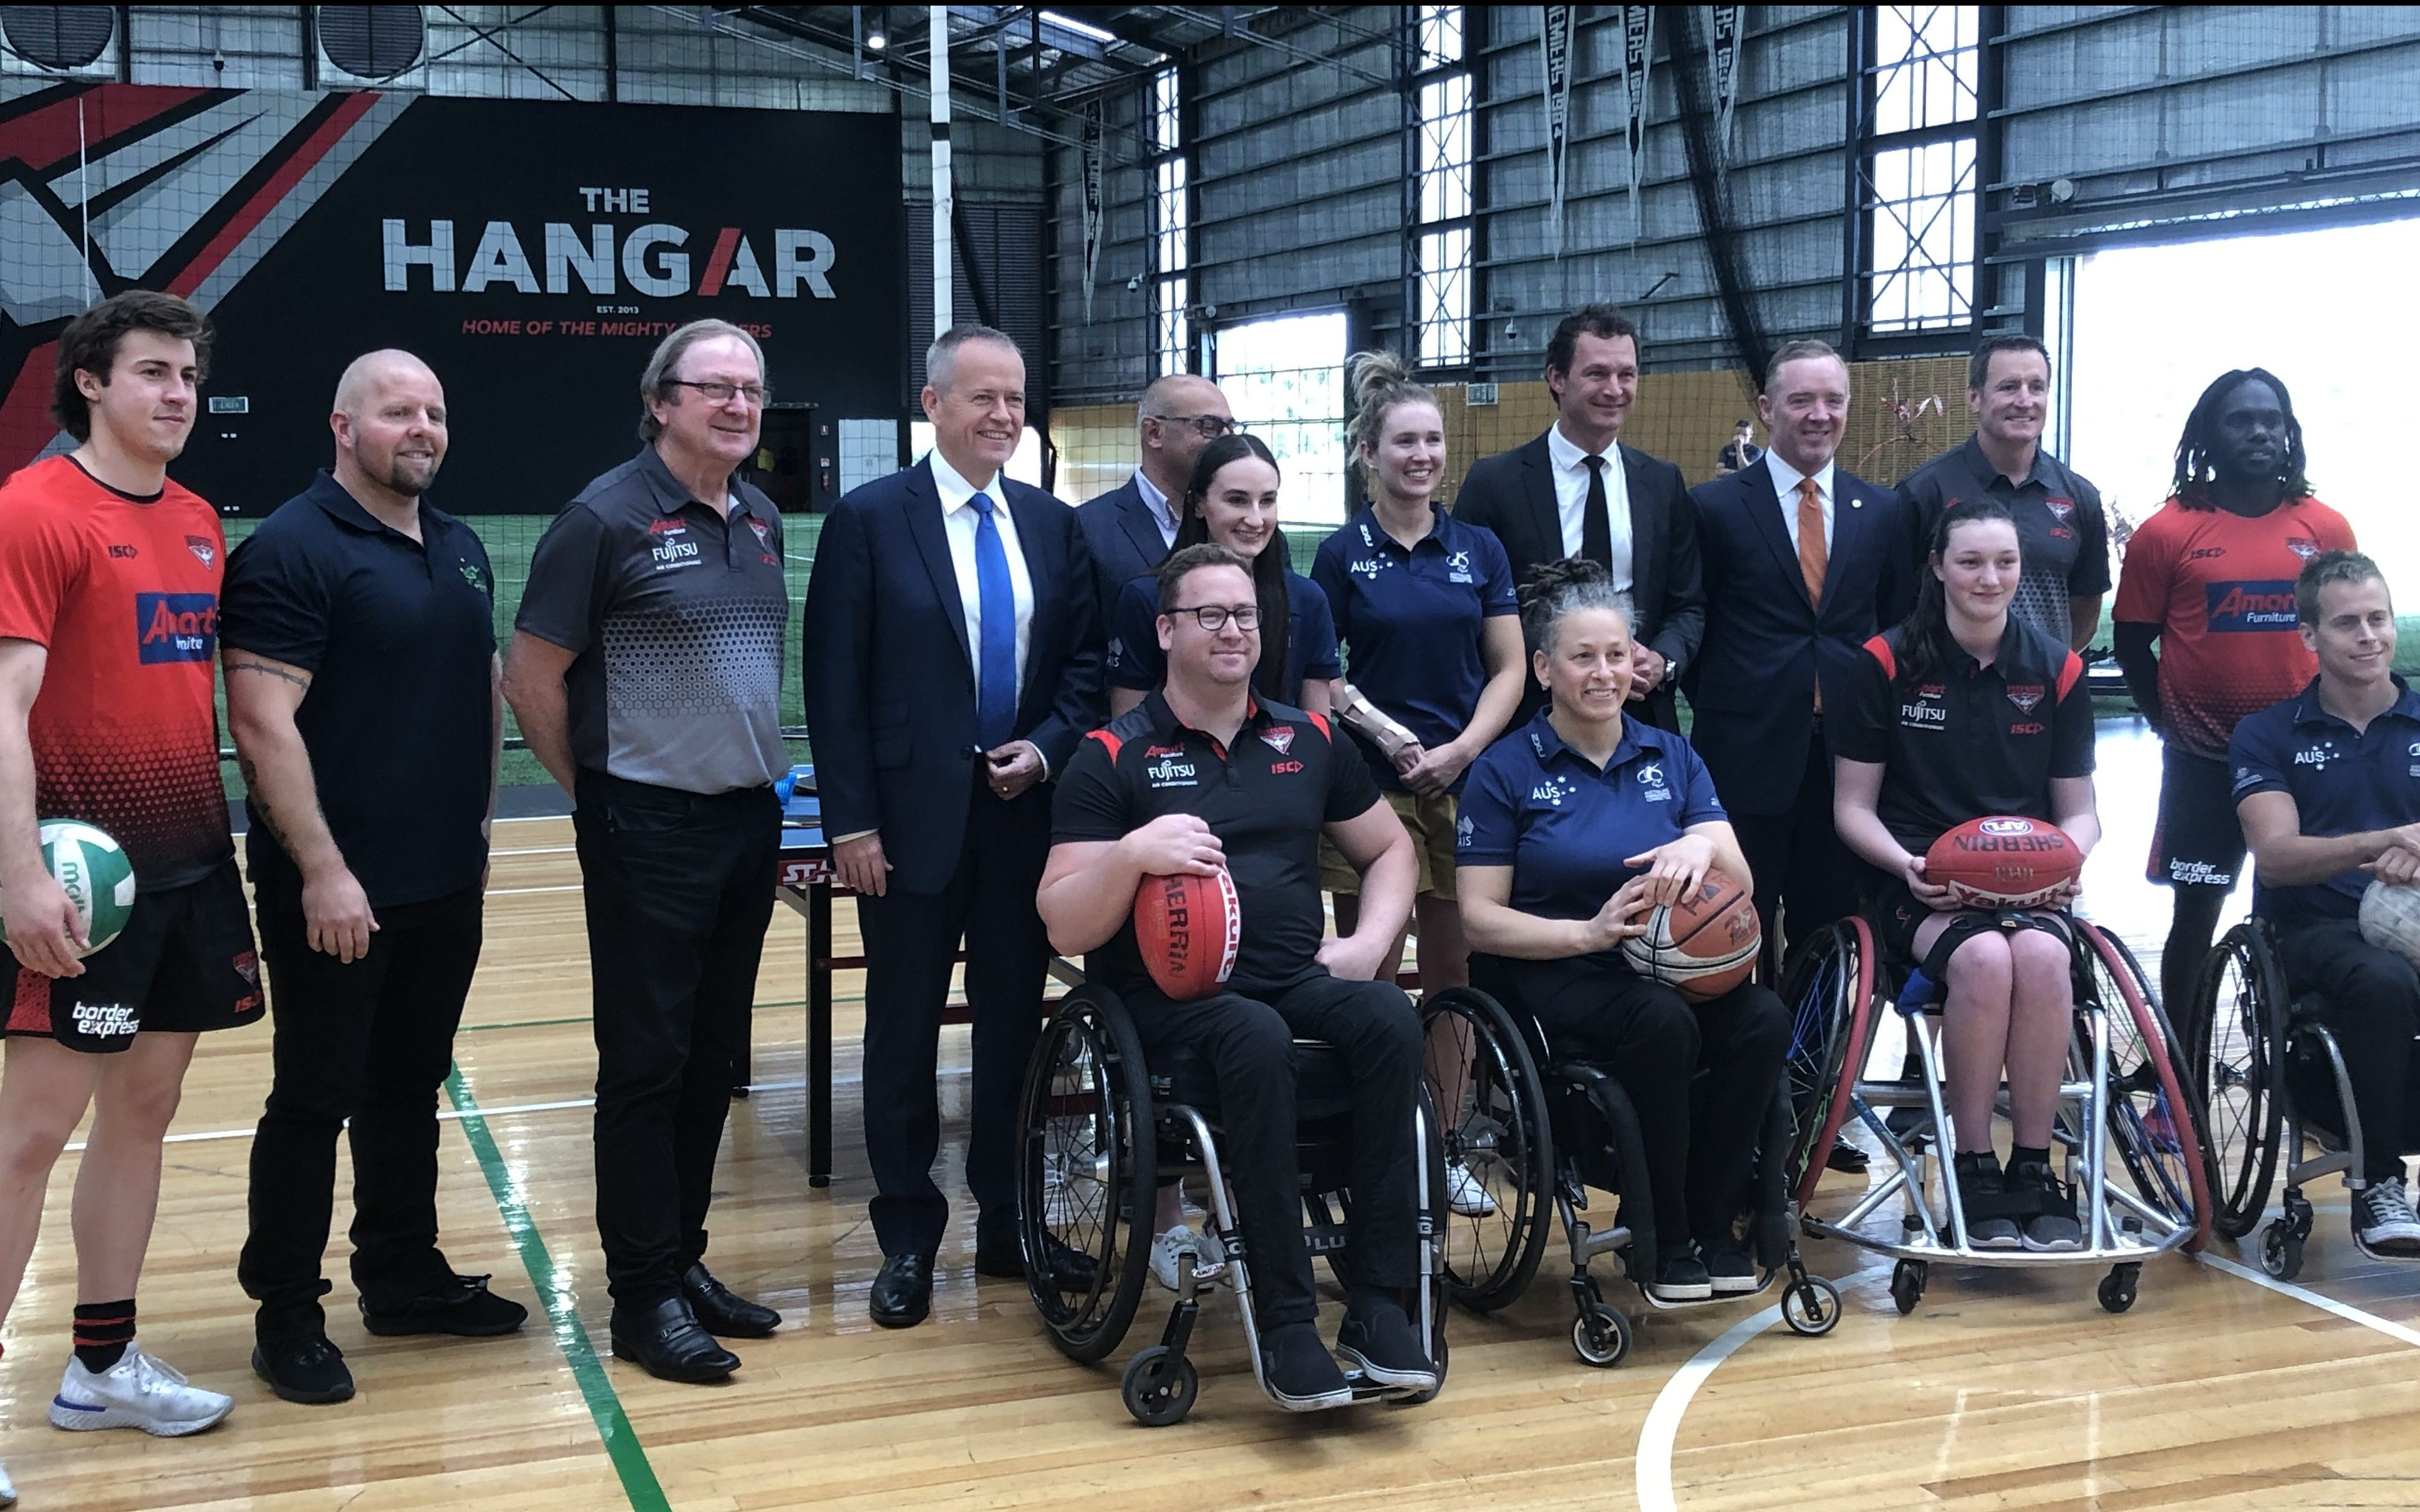 Bombers & APC welcome commitment to Paralympic athletes and enhanced community facilities at The Hangar